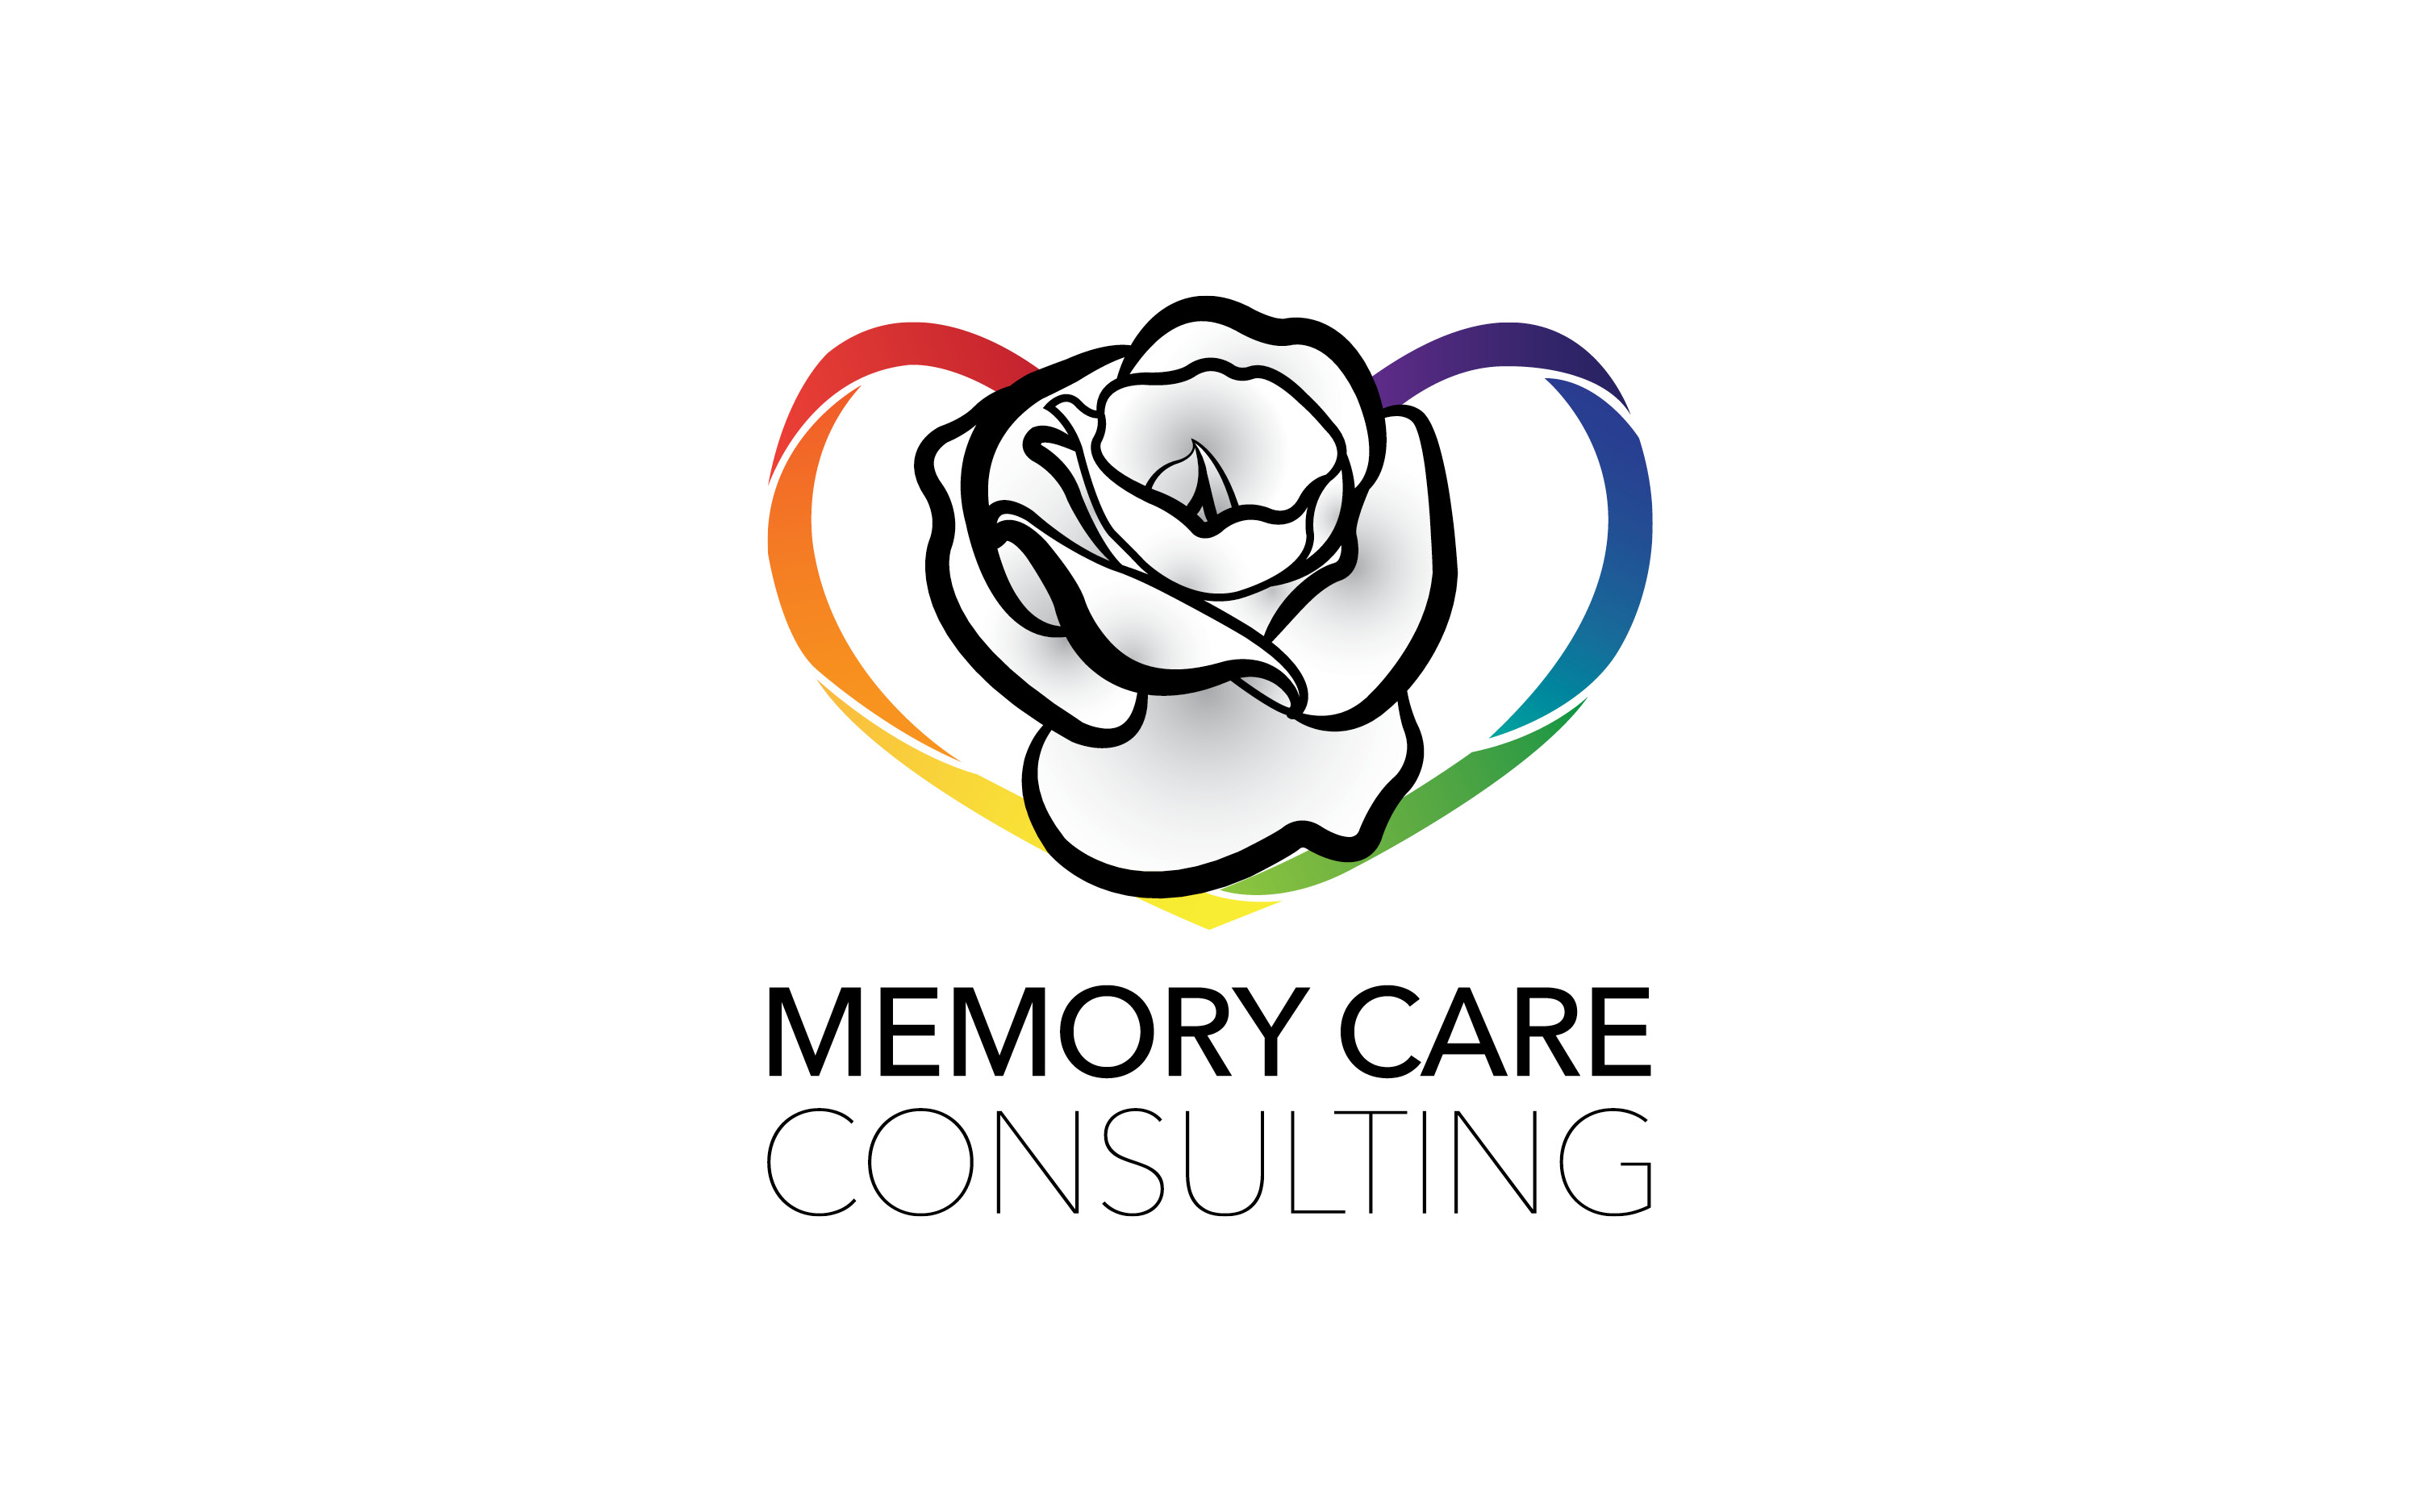 Memory Care Consulting